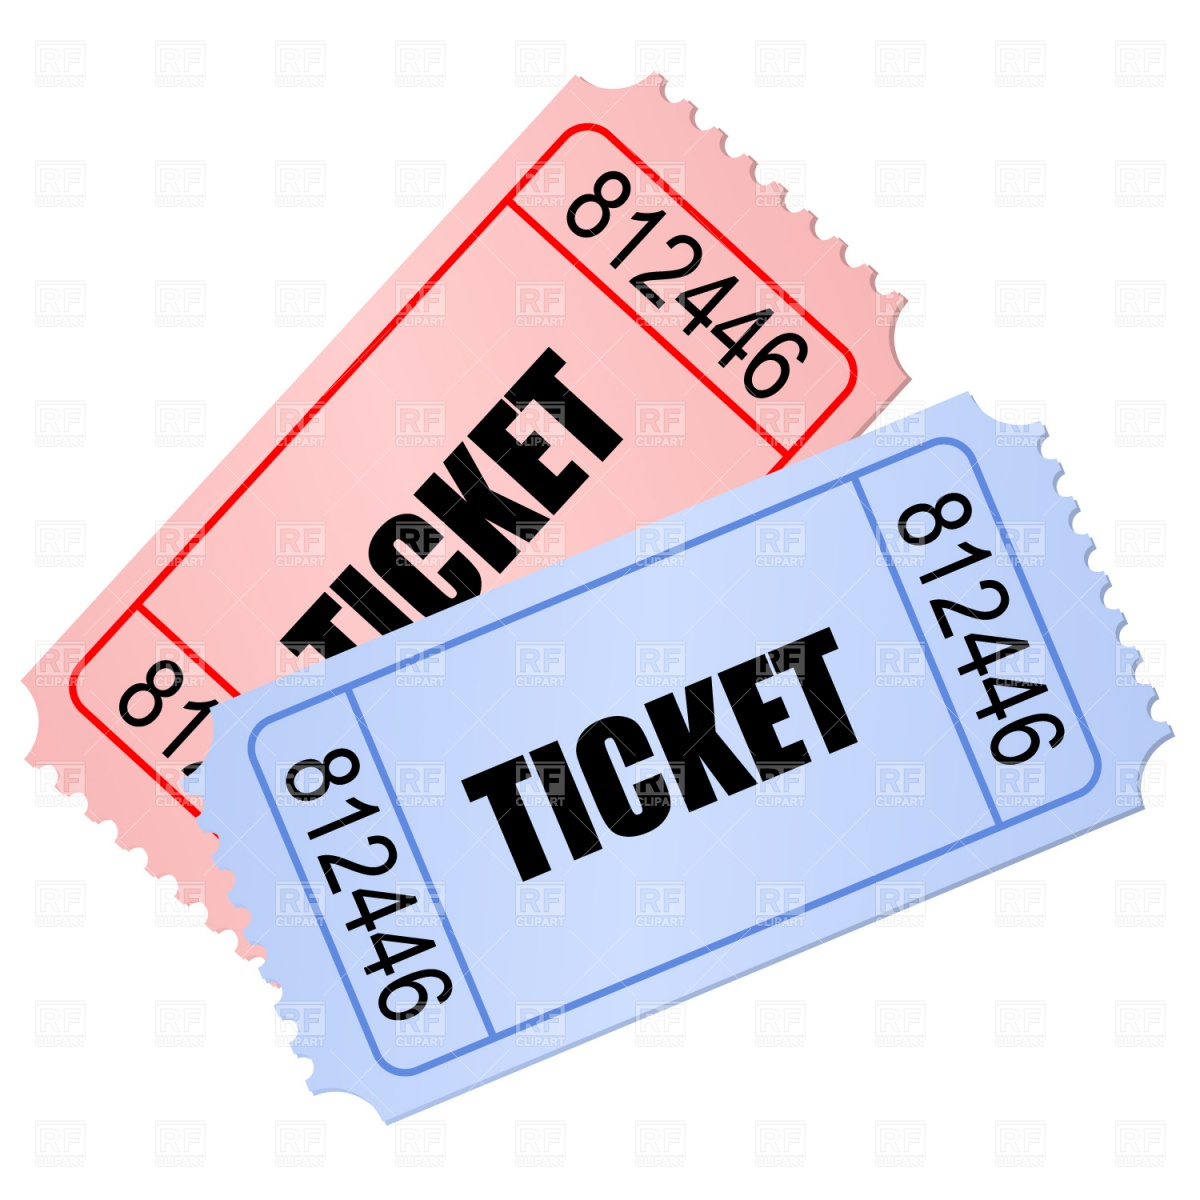 Tickets 1082 Objects Download Royalty Fr-Tickets 1082 Objects Download Royalty Free Vector Clip Art Eps-6